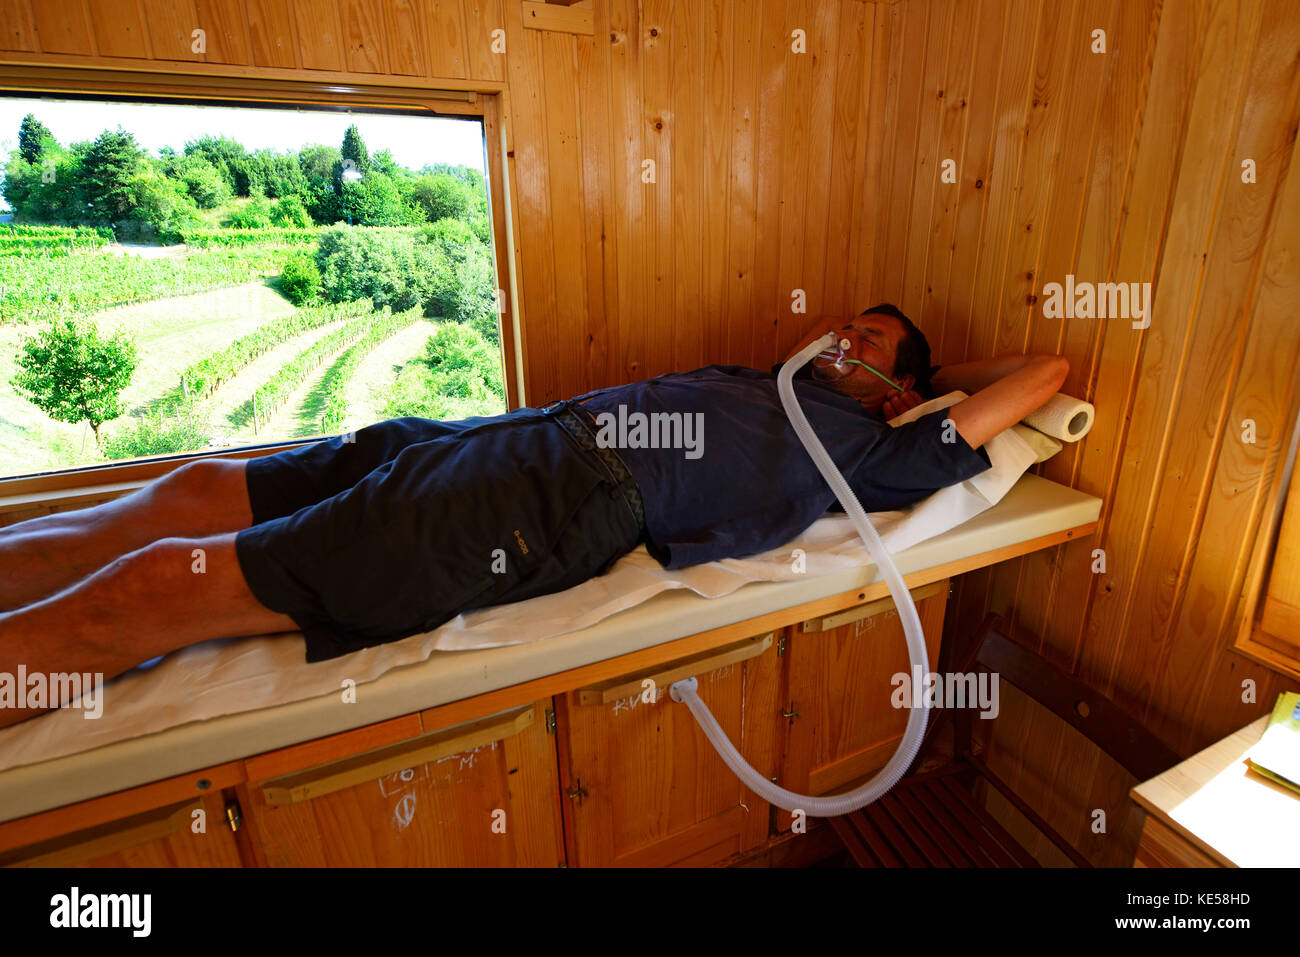 Man lying on a couch, bee therapy, api tourism, Dobrovo, Brda, Slovenia - Stock Image